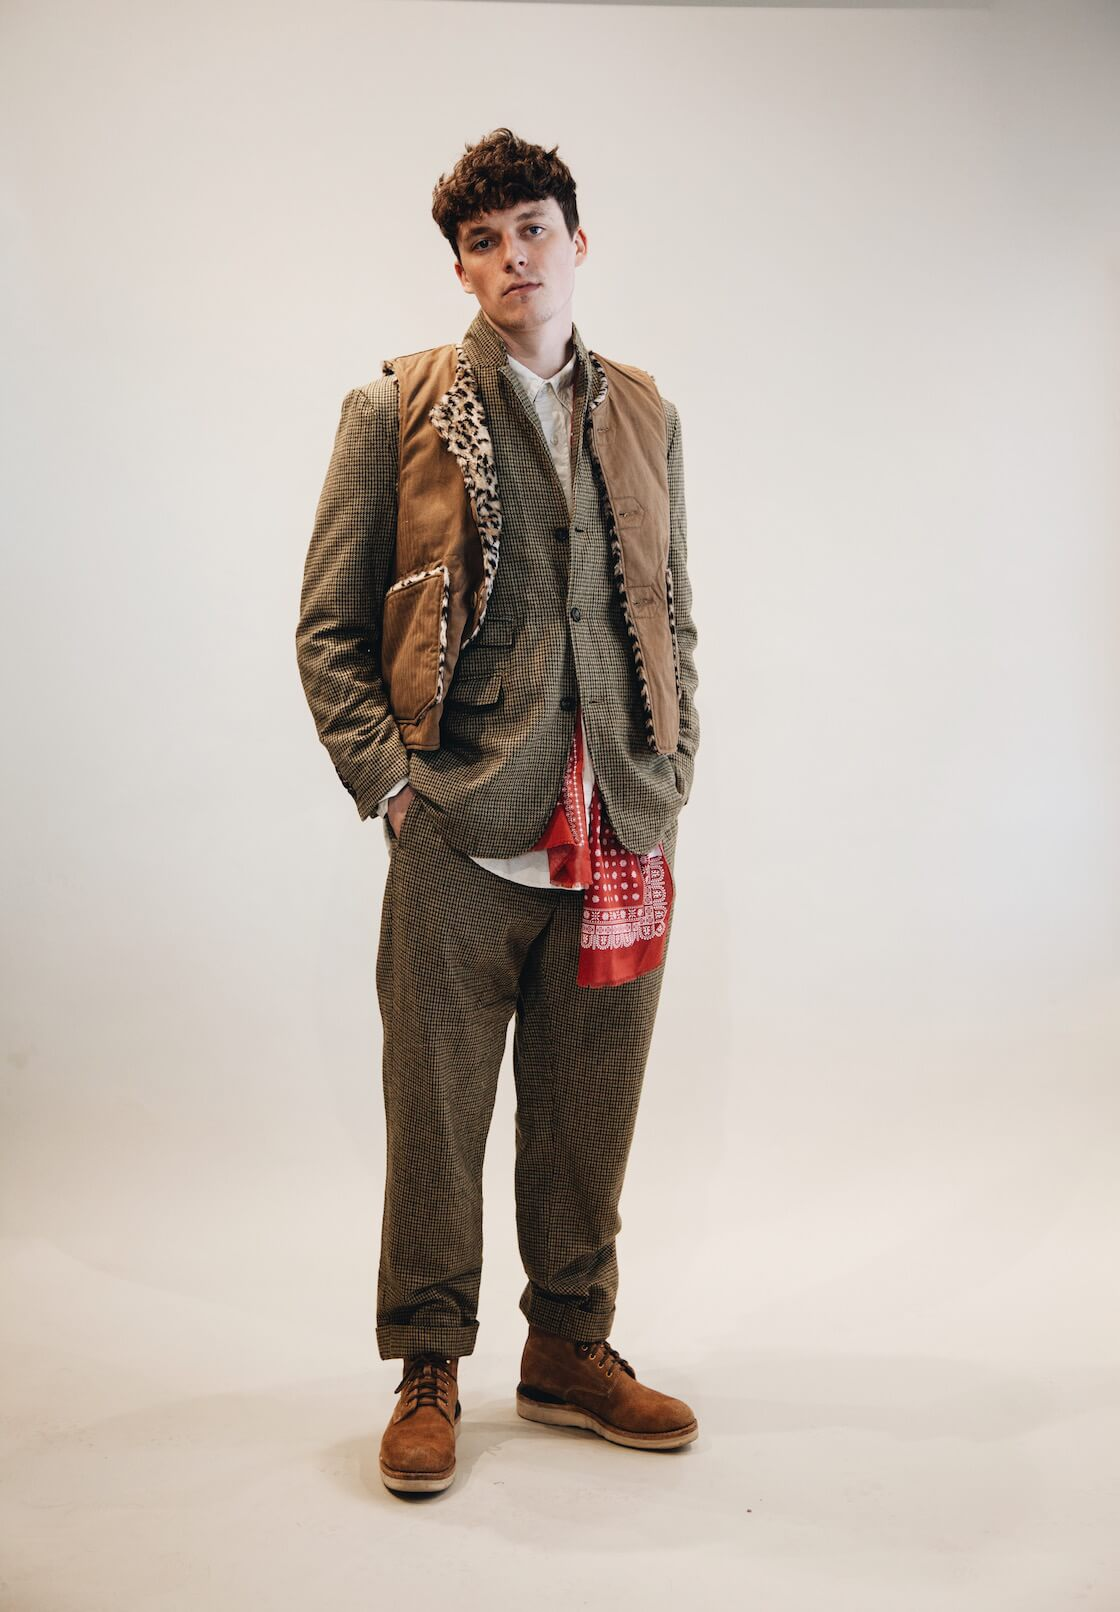 engineered garments andover jacket and pants, and over vest on body